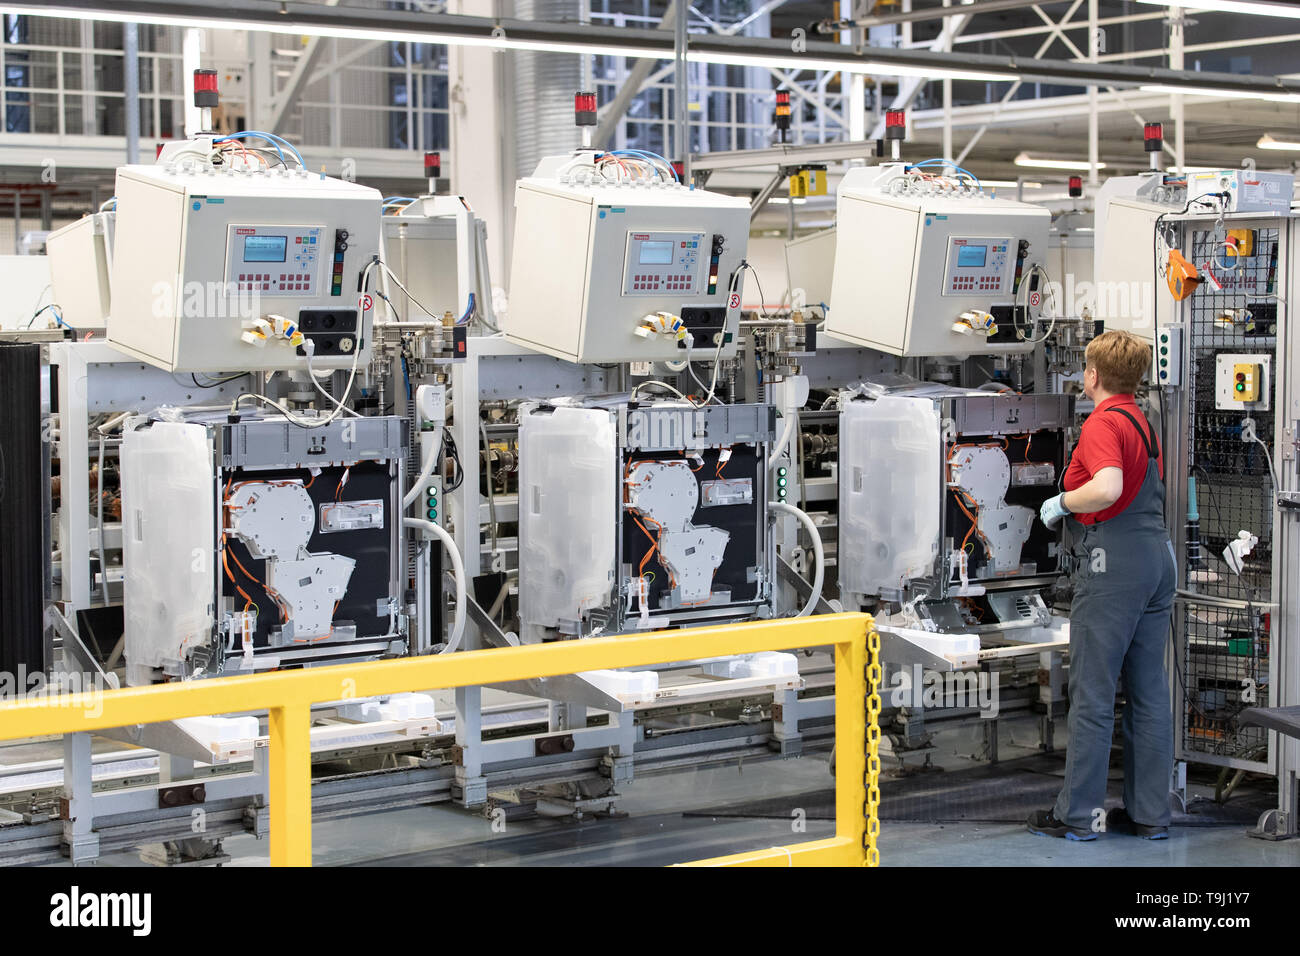 Bielefeld, Germany. 17th May, 2019. An employee carries out the final inspection of a dishwasher on a production line at Miele & Cie. KG. Miele is a German manufacturer of household and commercial appliances based in Gütersloh. Credit: Friso Gentsch/dpa/Alamy Live News - Stock Image